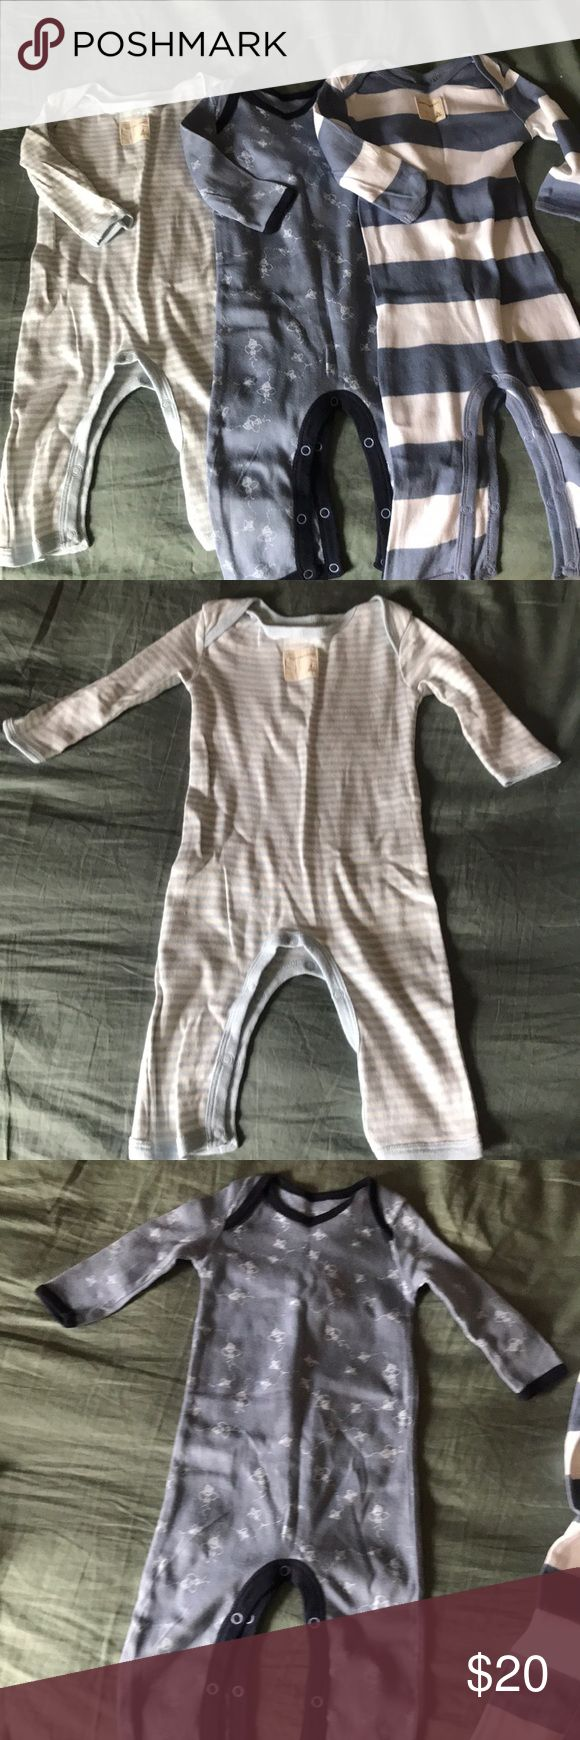 3 Burts Bees Onesies New no tags....all 3 were washed/pressed and never worn 0-3 months snap closure on bottom round legs , organic ...each retail for over 11 bucks , priced for all 3 Burt's Bees Baby One Pieces